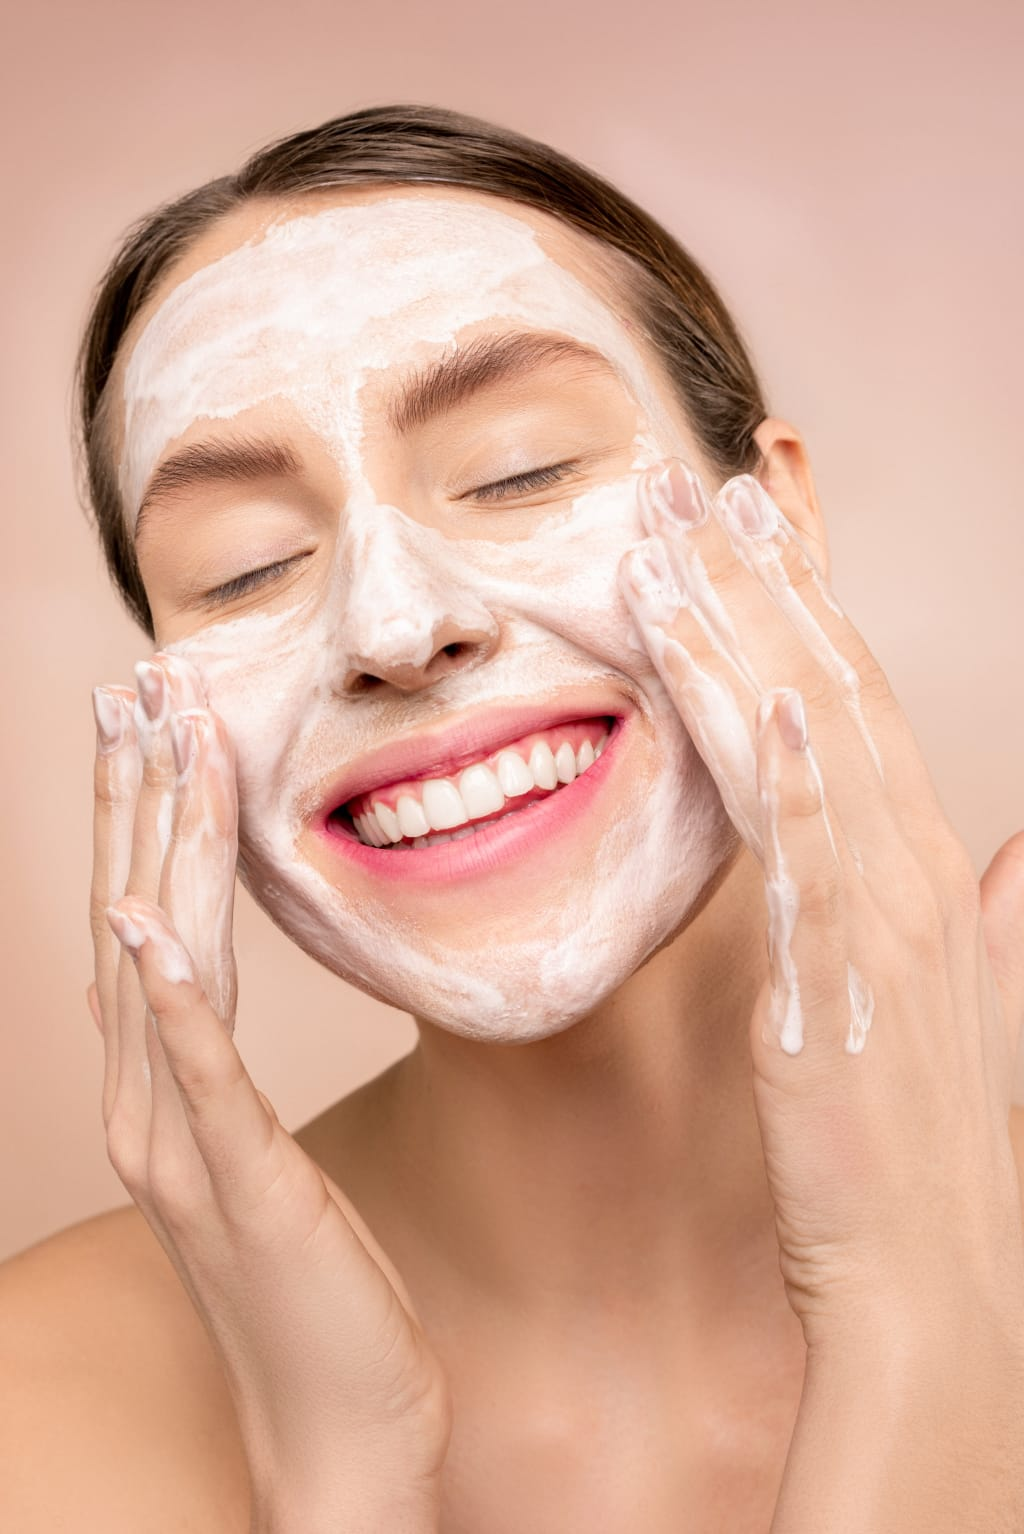 Top Trends in Skin Care Today